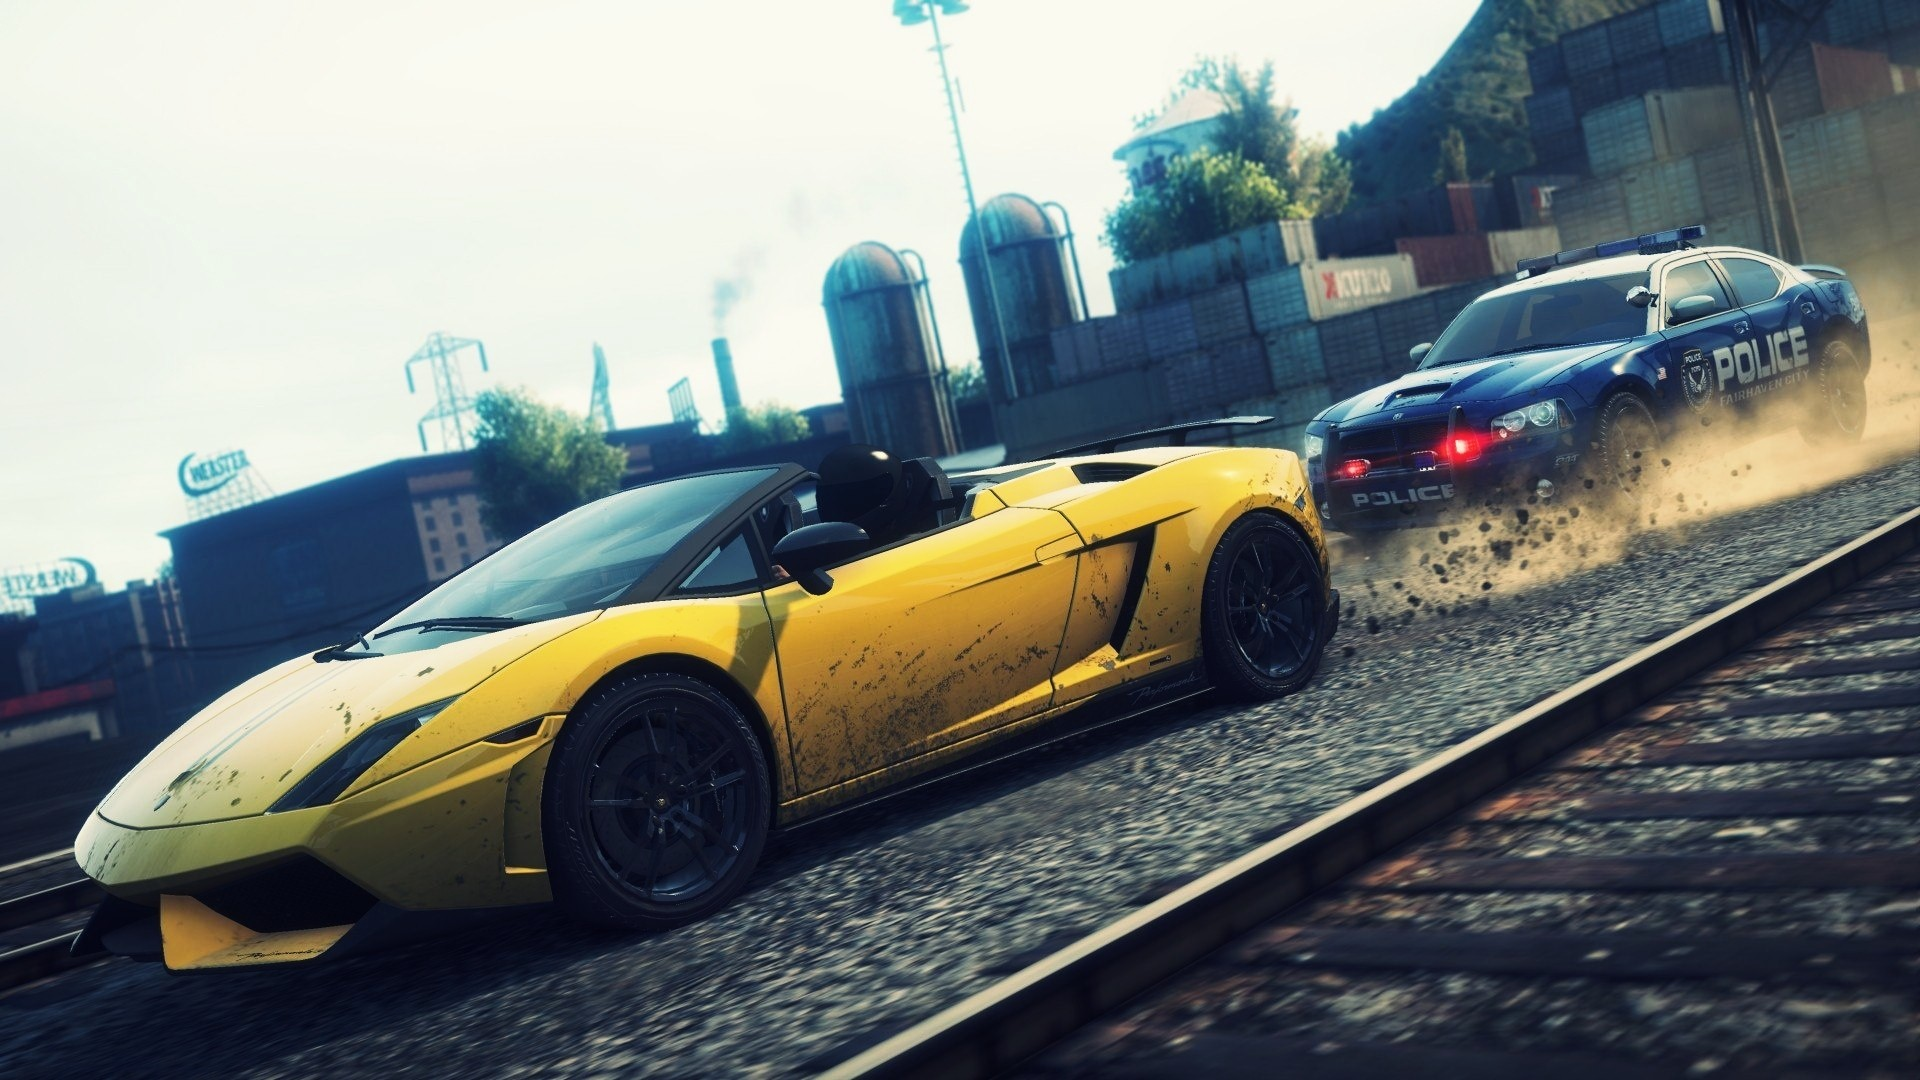 Wallpapers ID422221 Download Next Wallpaper Prev Need For Speed Most Wanted 2